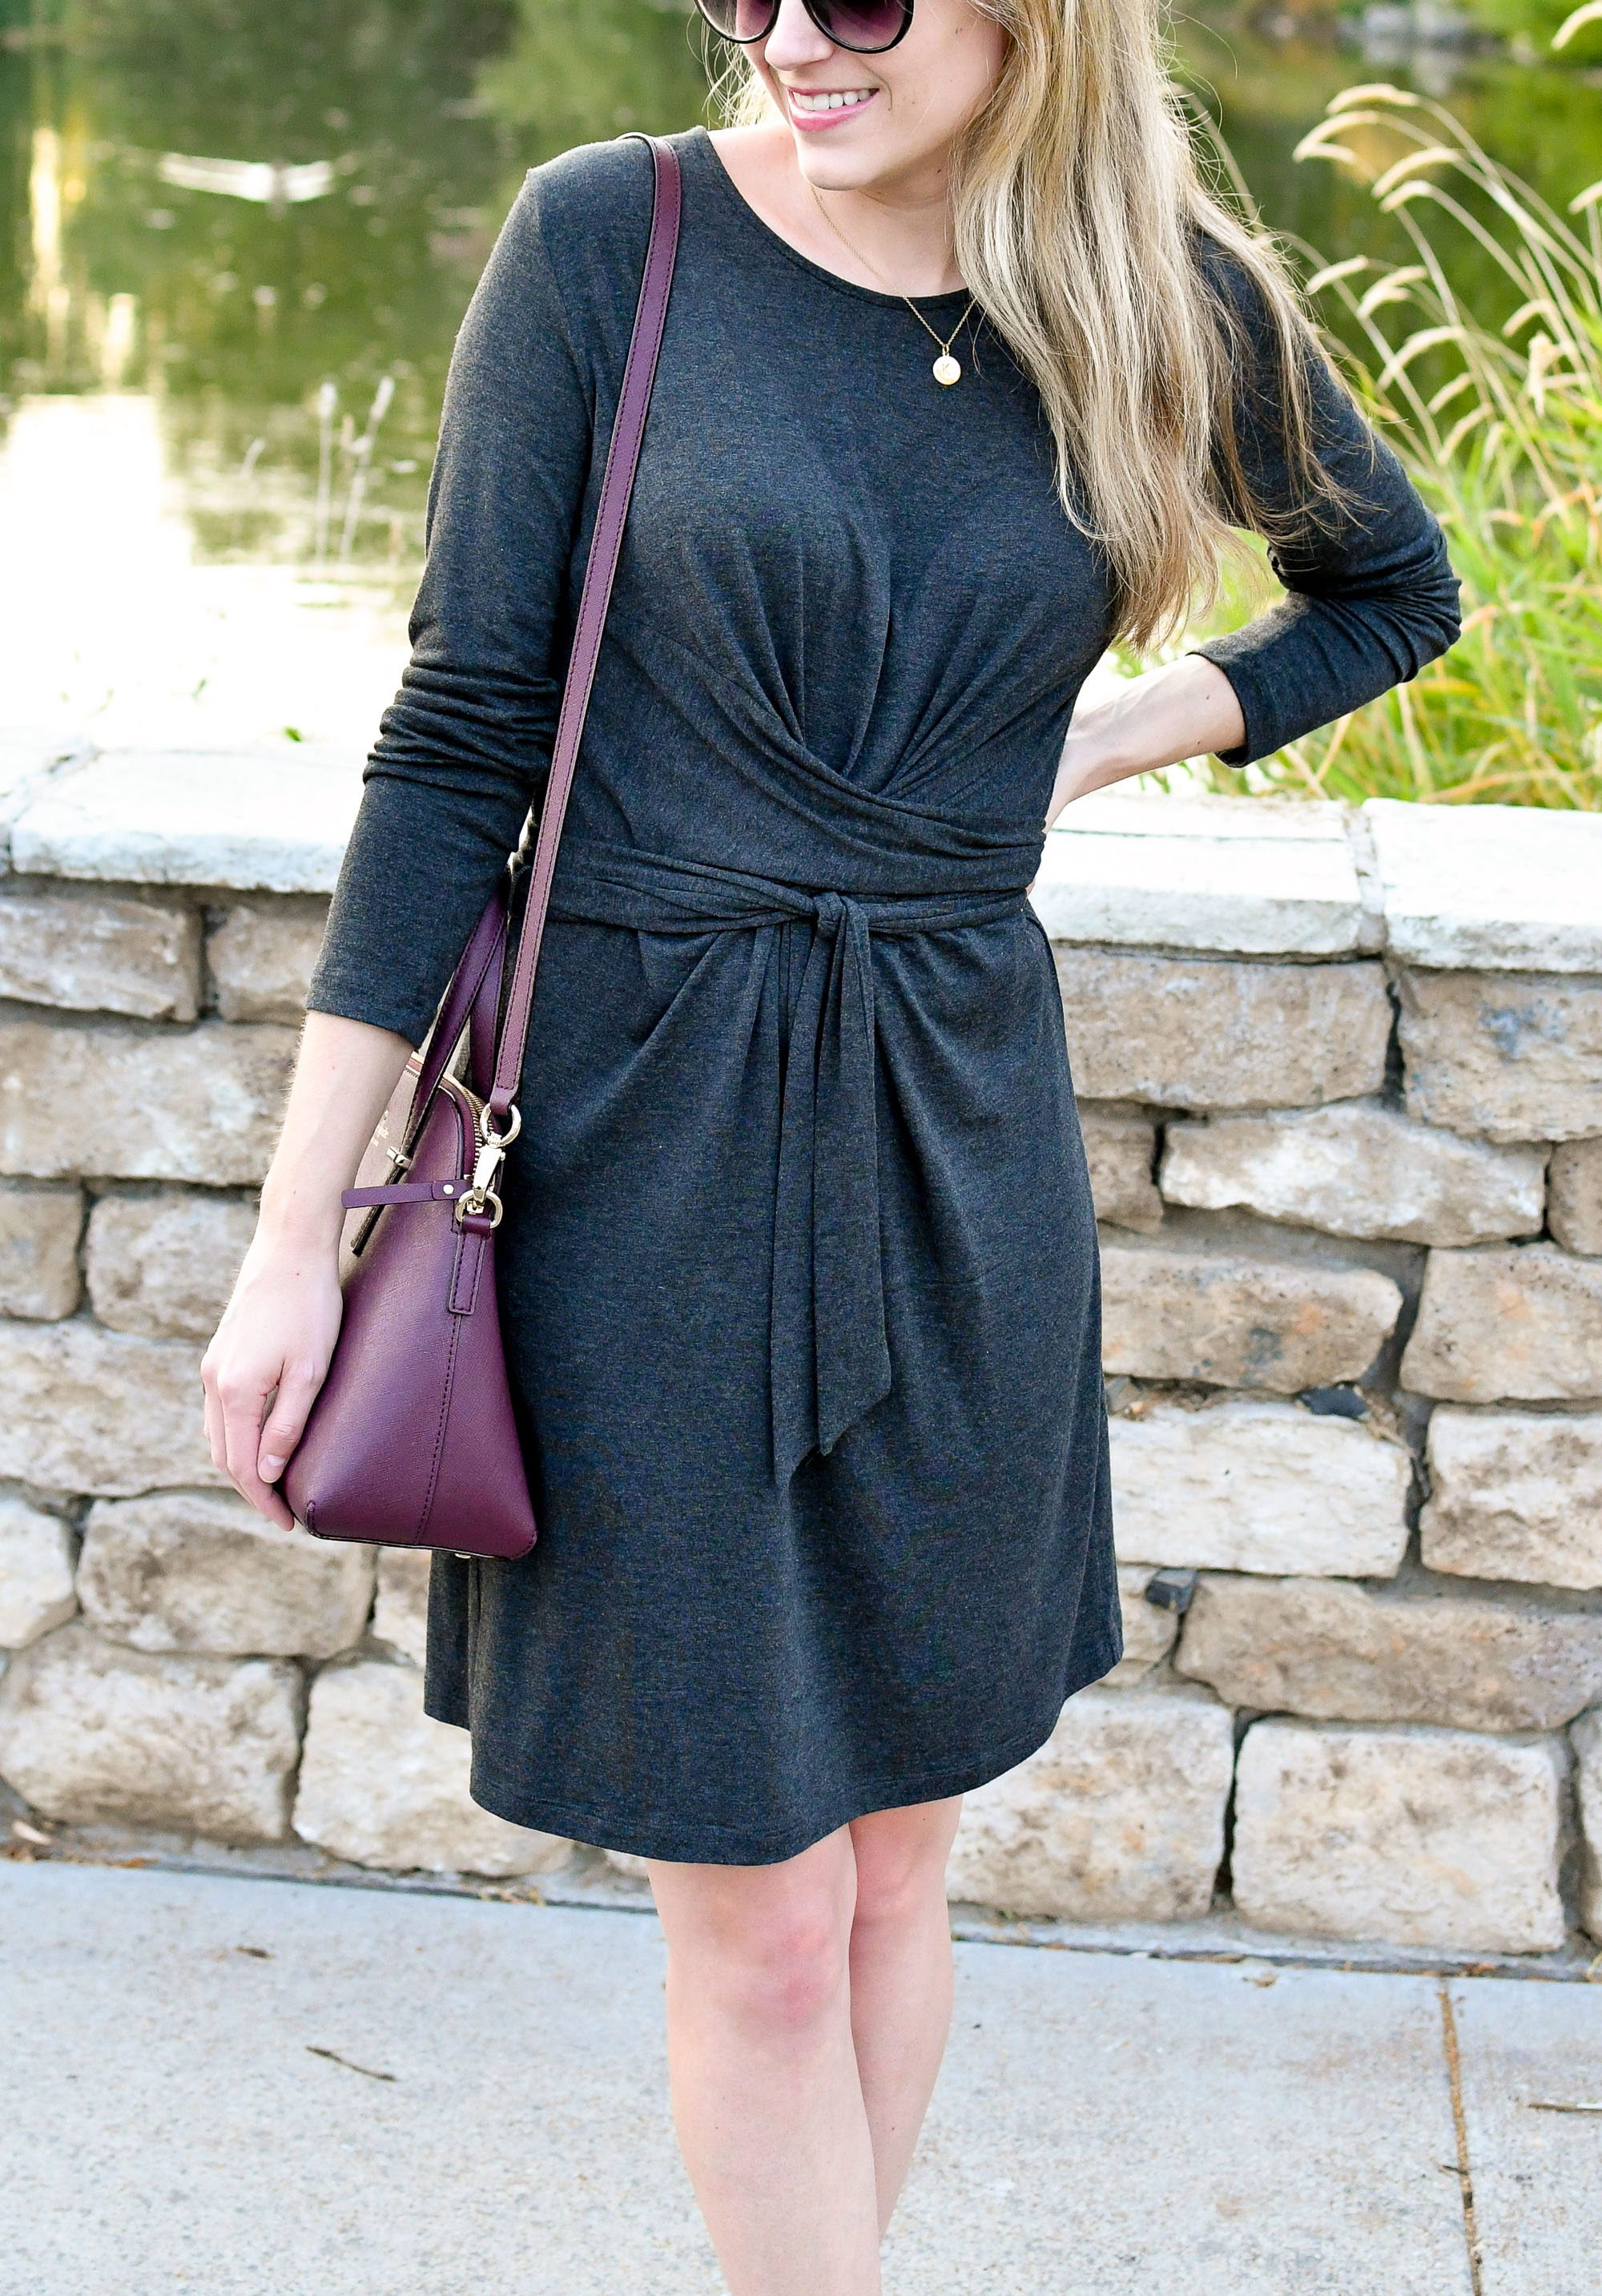 Tie waist dress summer outfit with burgundy bag — Cotton Cashmere Cat Hair